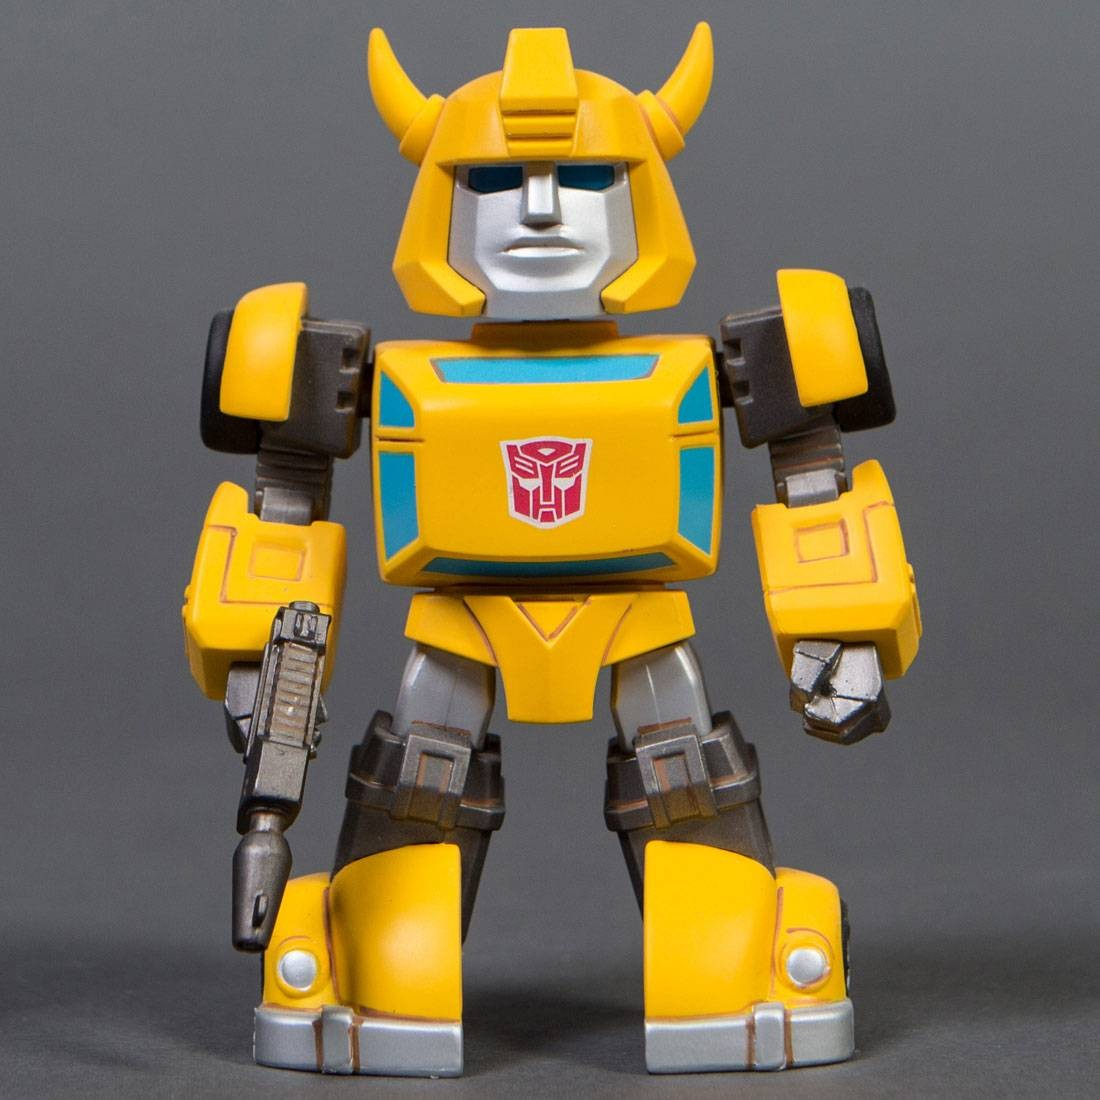 BAIT x Transformers x Switch Collectibles Bumblebee 4.5 Inch Figure - Antique Metals Edition